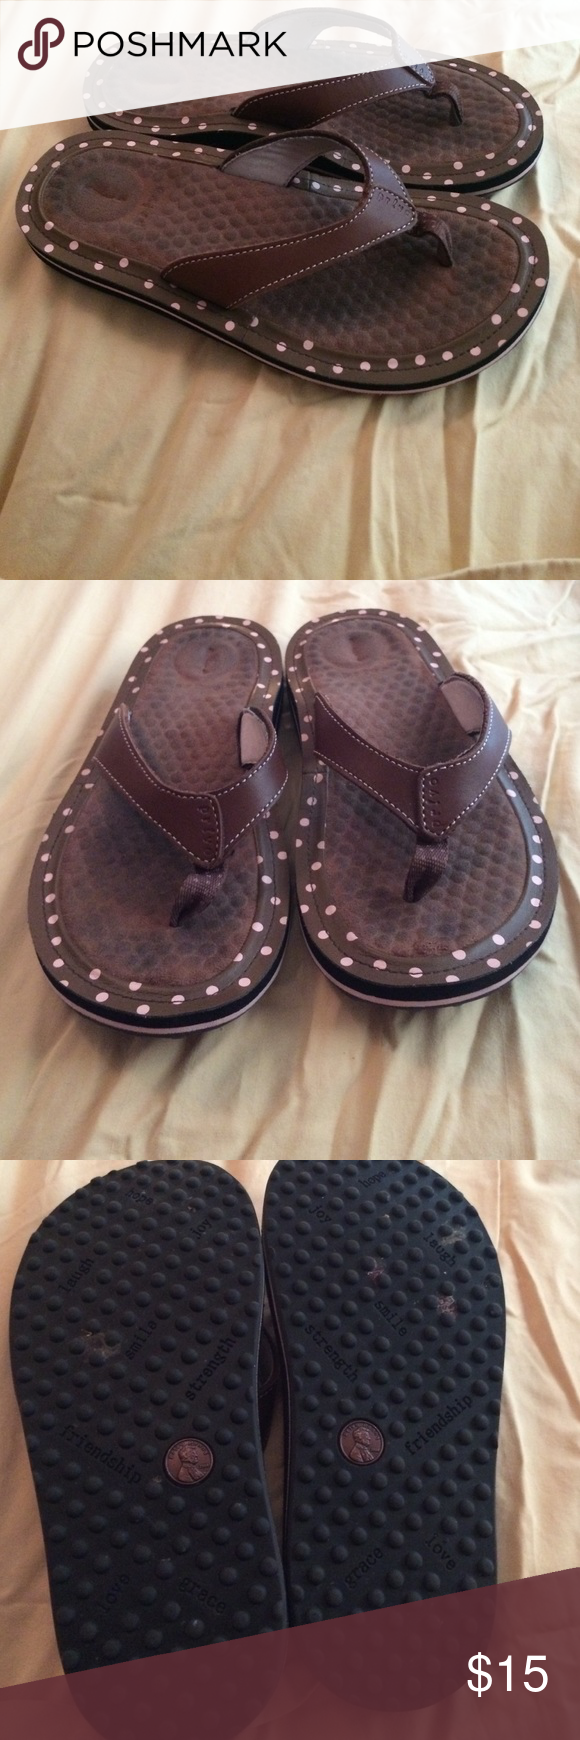 a2fea990dc4986 Shoes Sandals · Privo penny leather thong brown pink polka dot Being  offered is a pair of privo